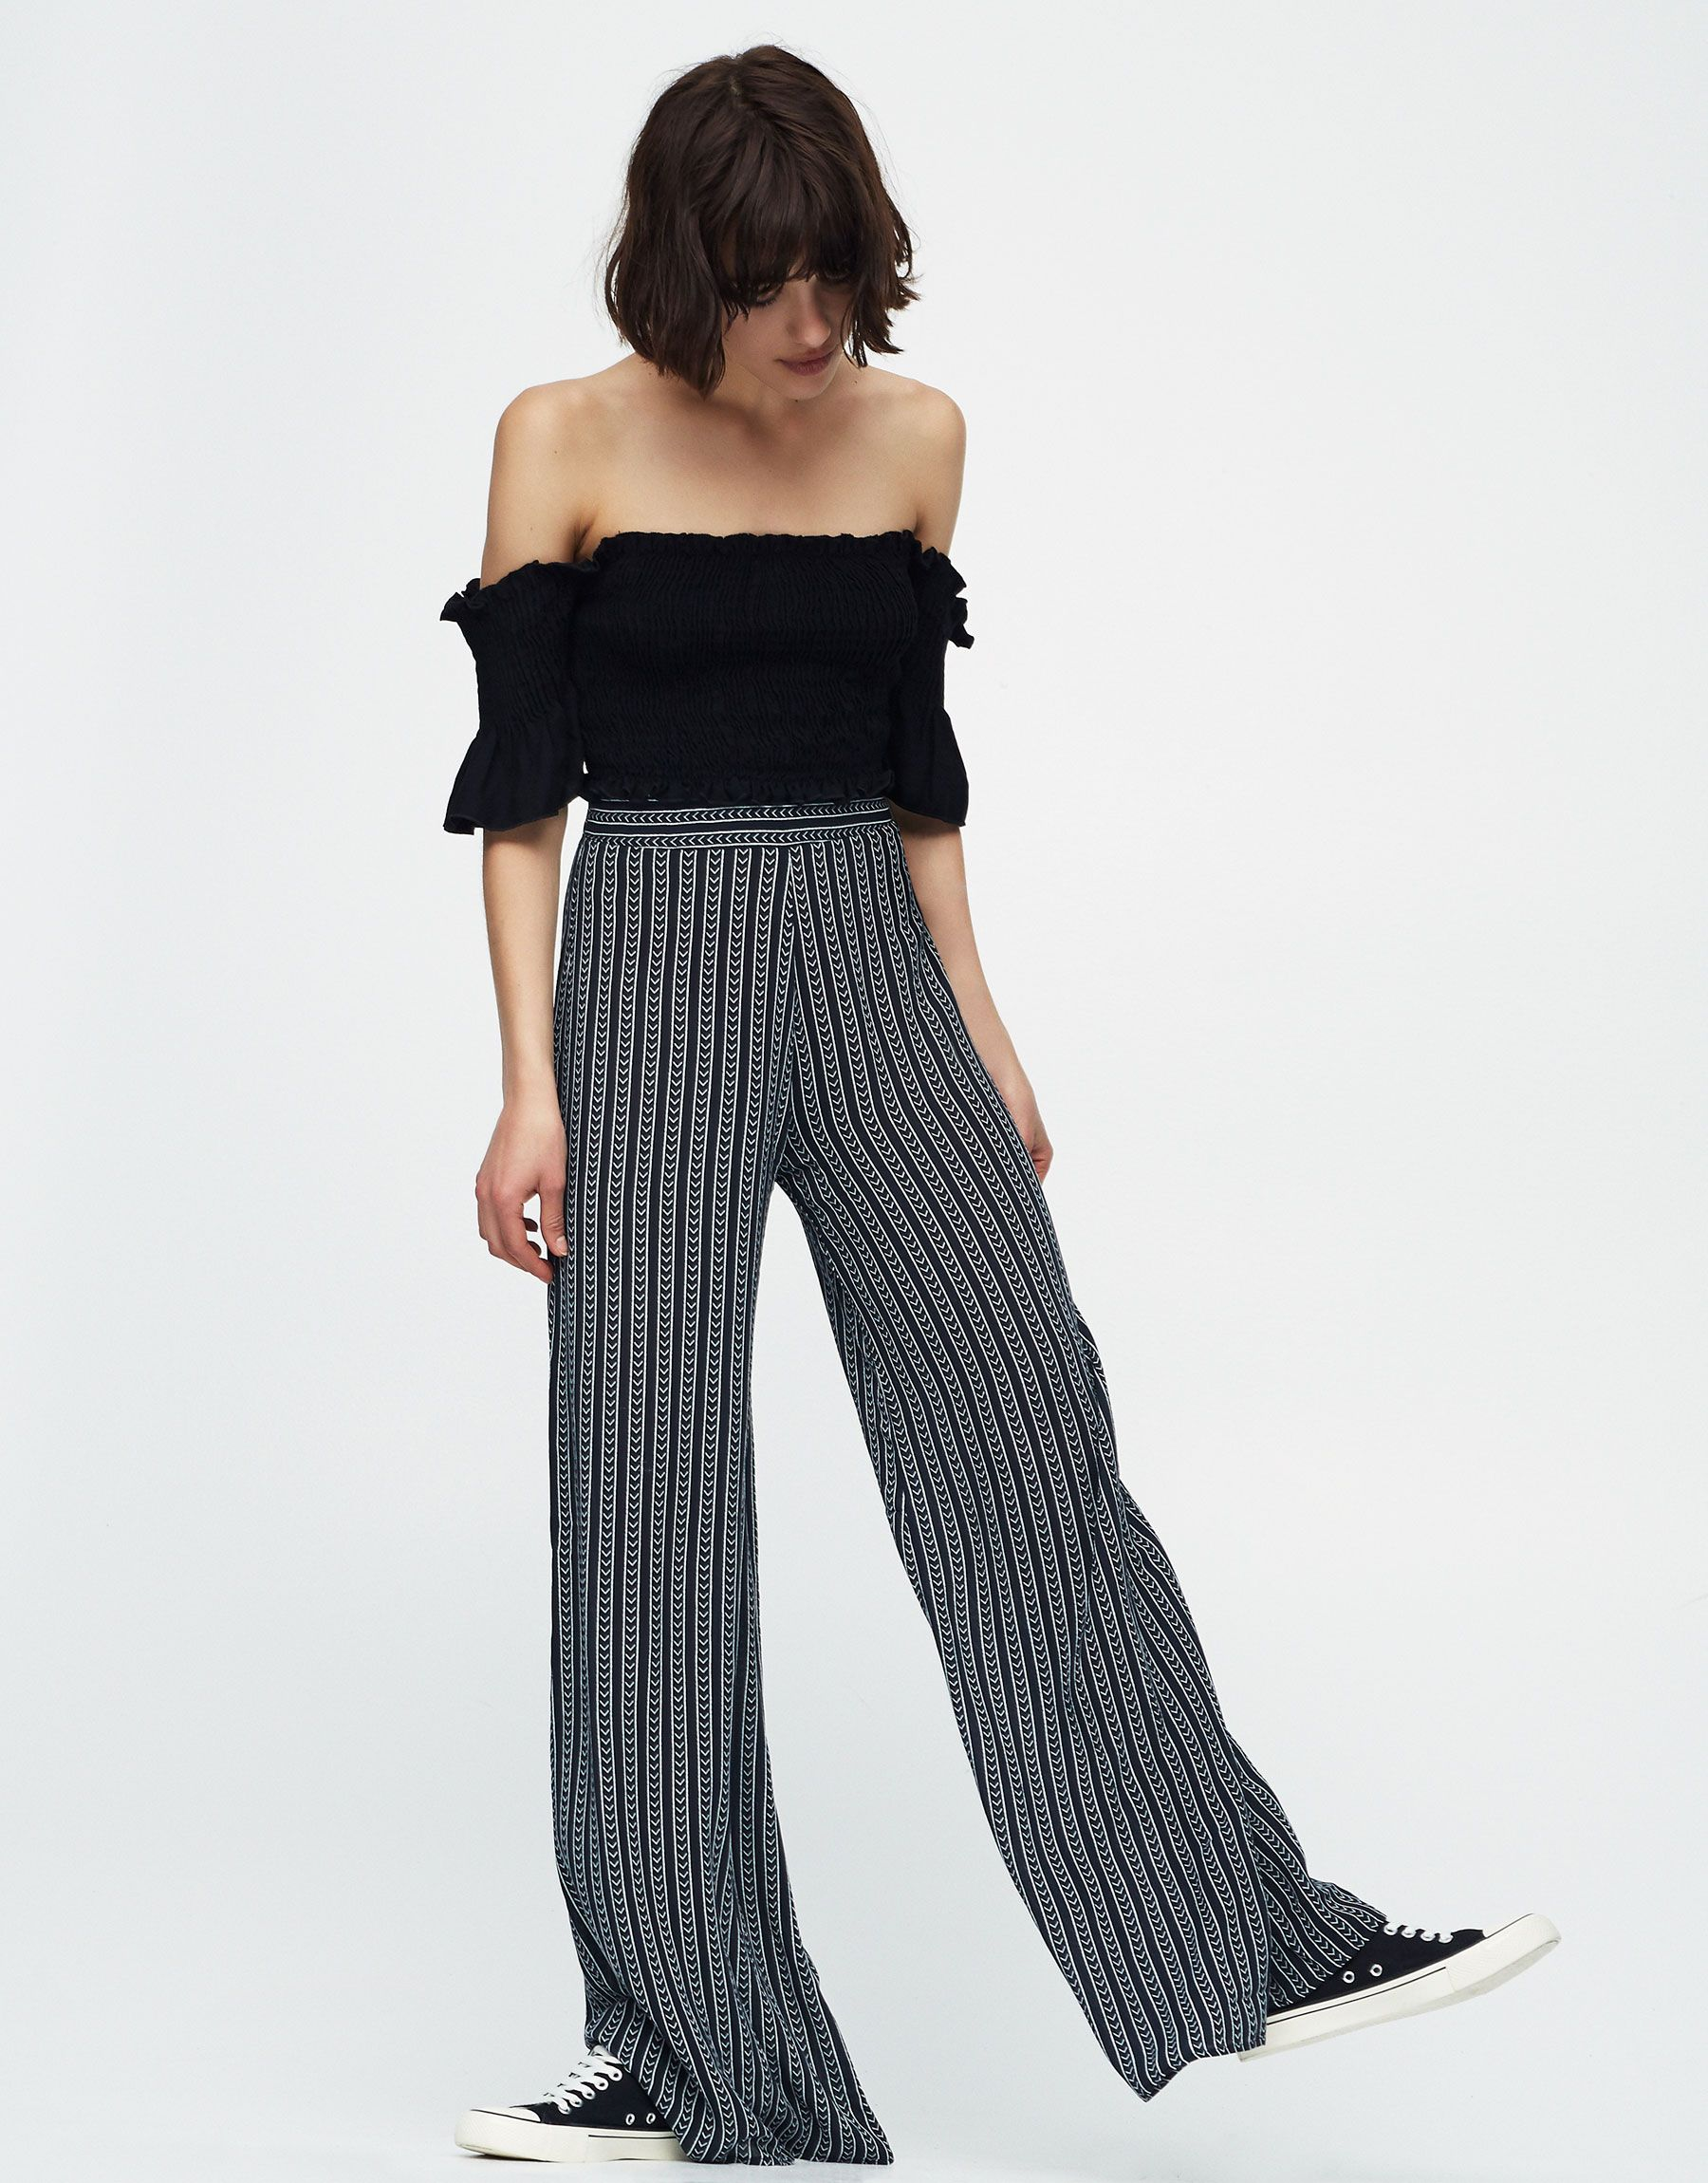 b83e7efbc Palazzo trousers - Trousers - Clothing - Woman - PULL&BEAR Egypt ...